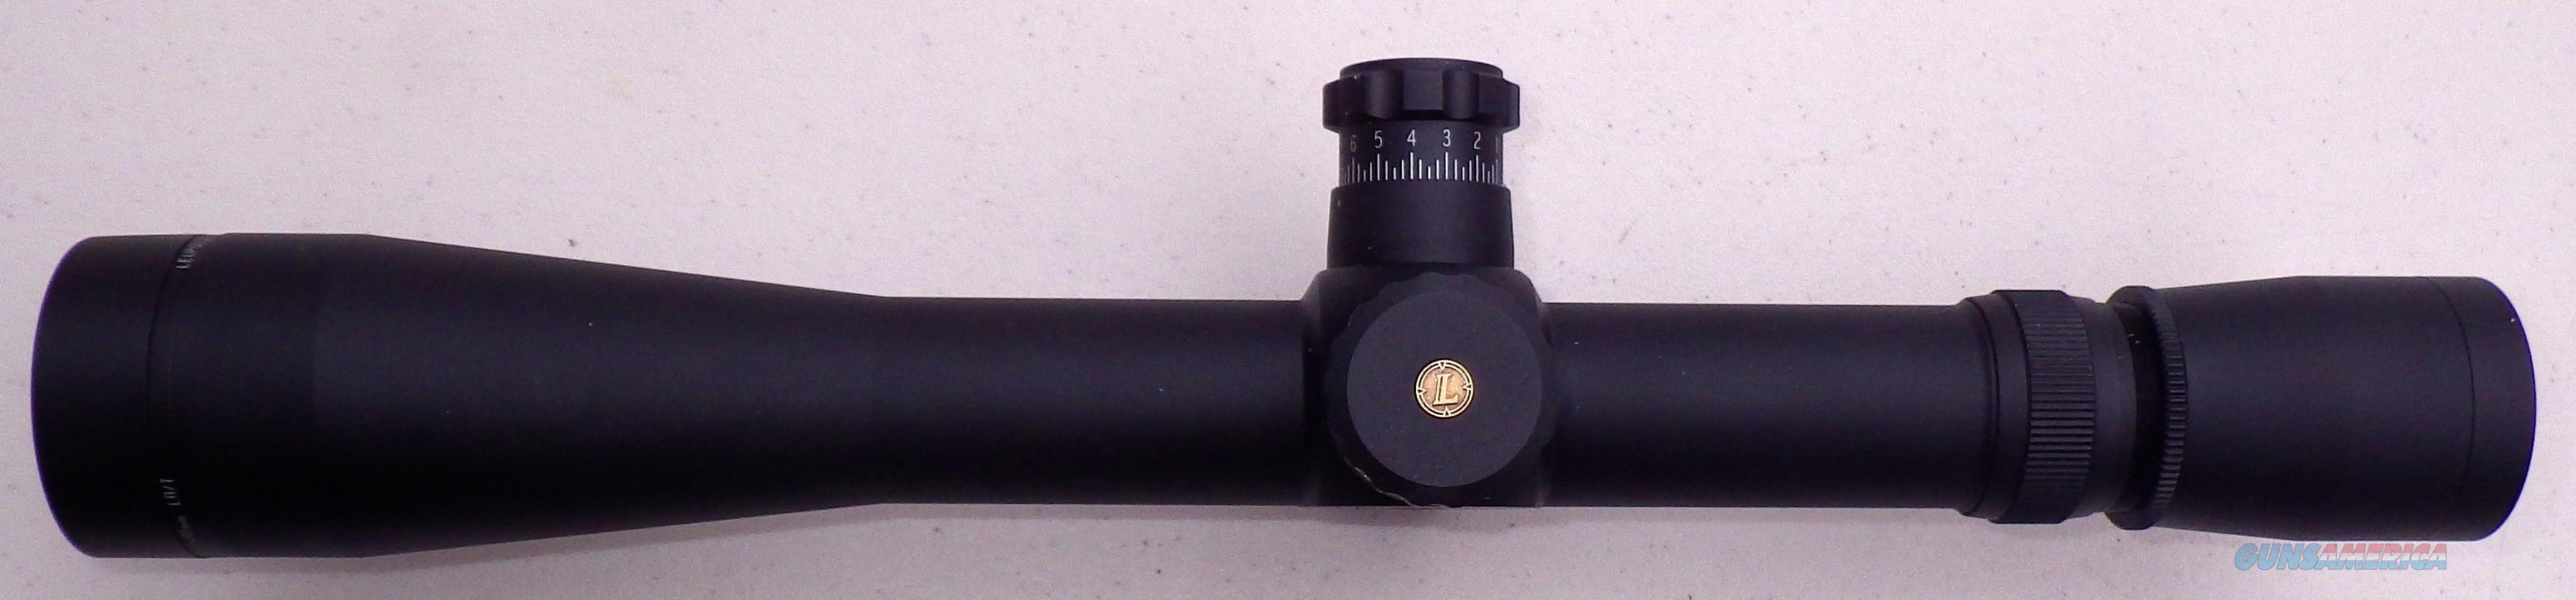 Leupold Mark 4 3.5-10x40mm LR/T M1 TMR  Non-Guns > Scopes/Mounts/Rings & Optics > Rifle Scopes > Variable Focal Length